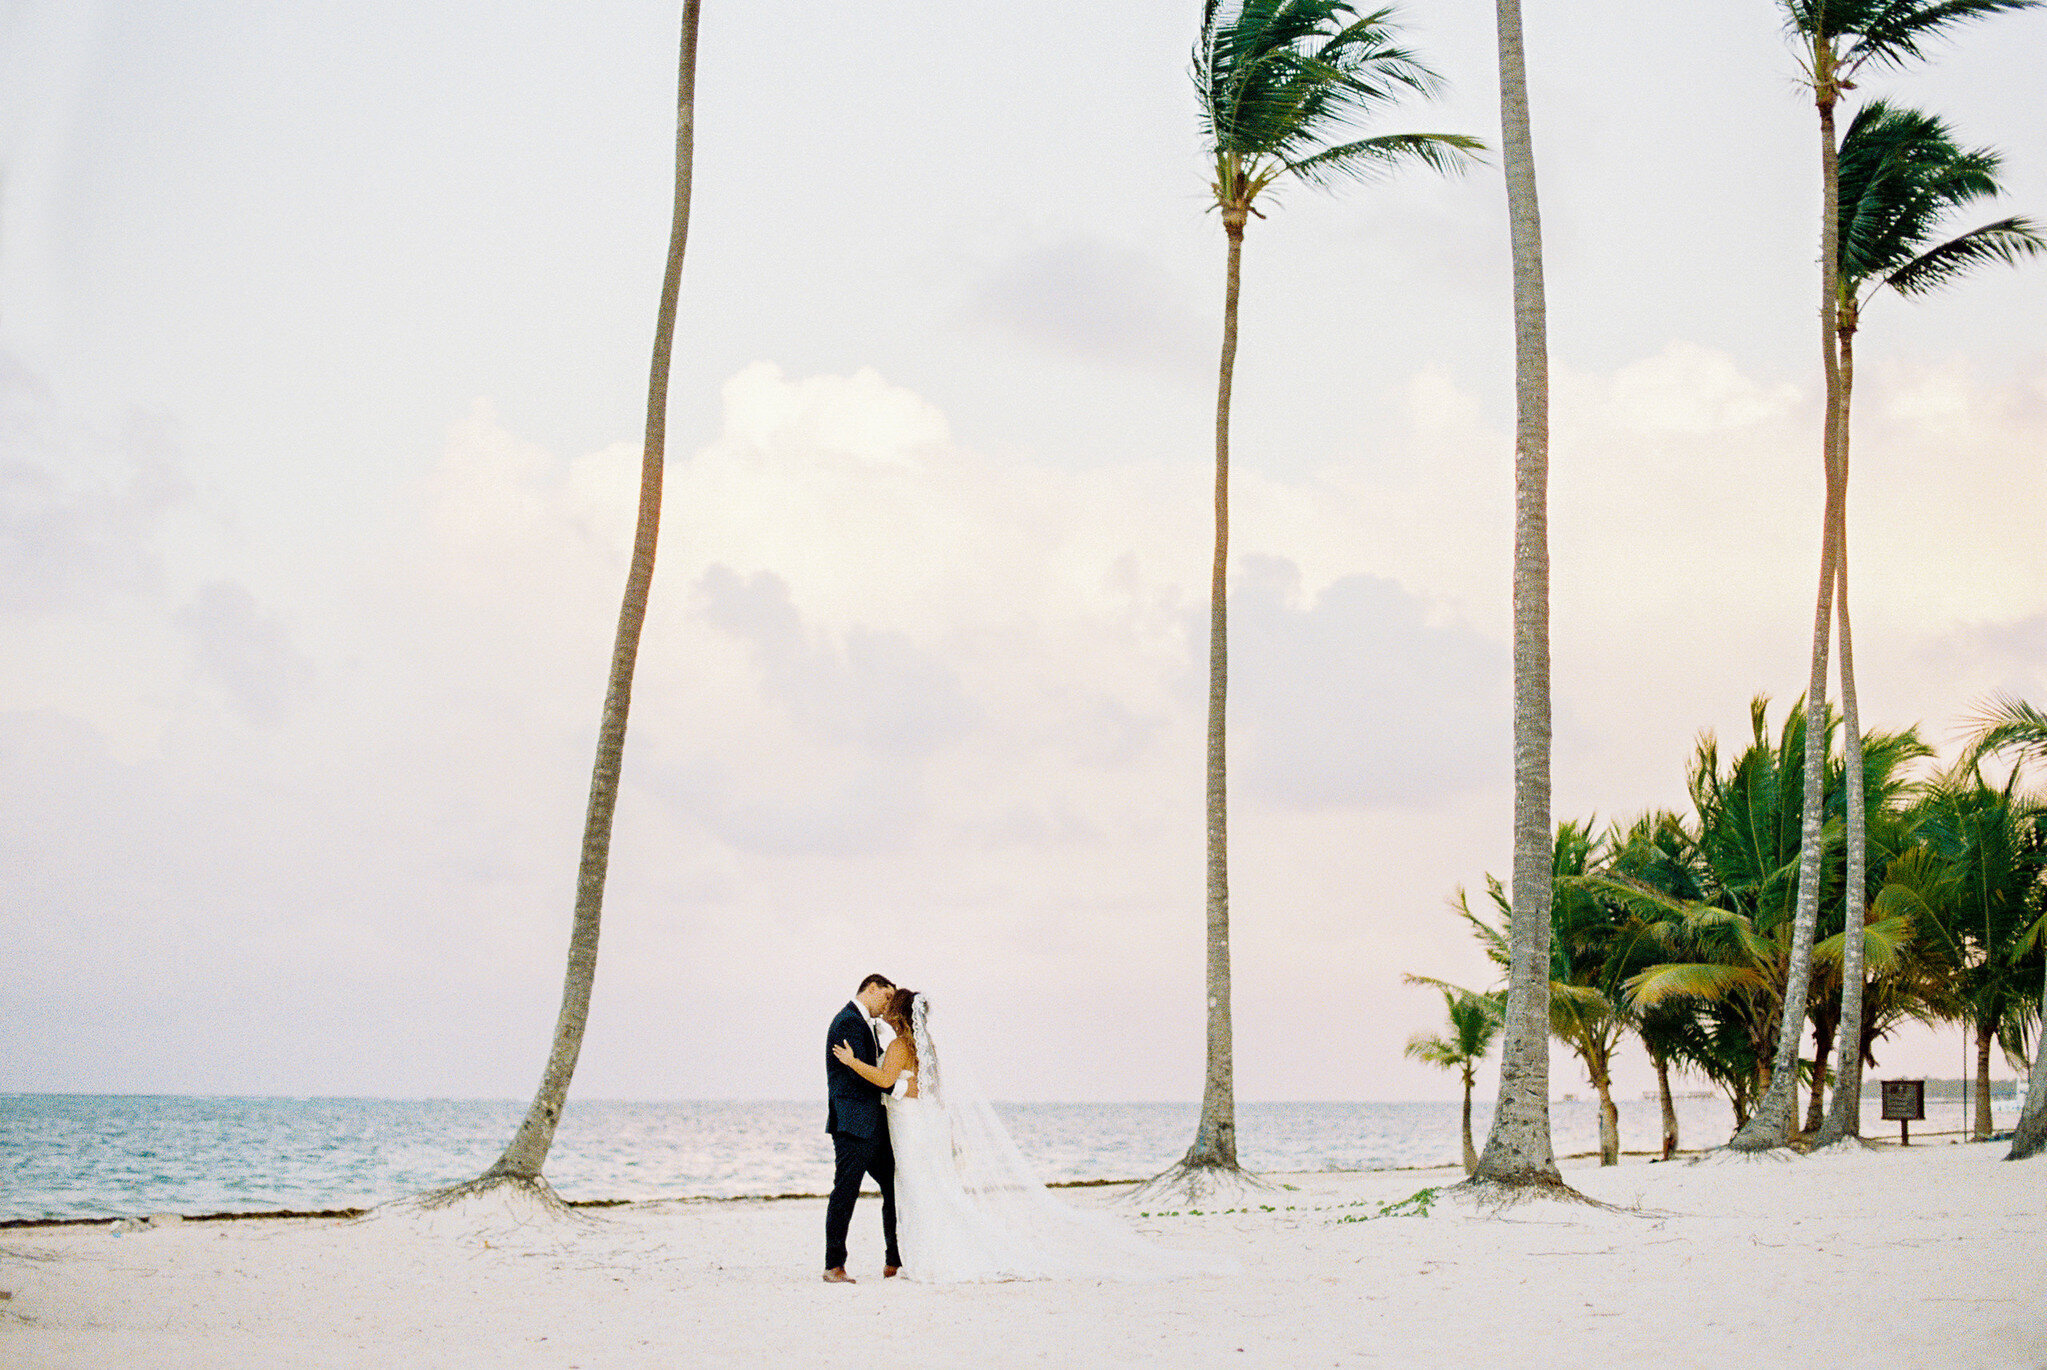 Punta Cana Beach Wedding at Jelly Fish Restaurant